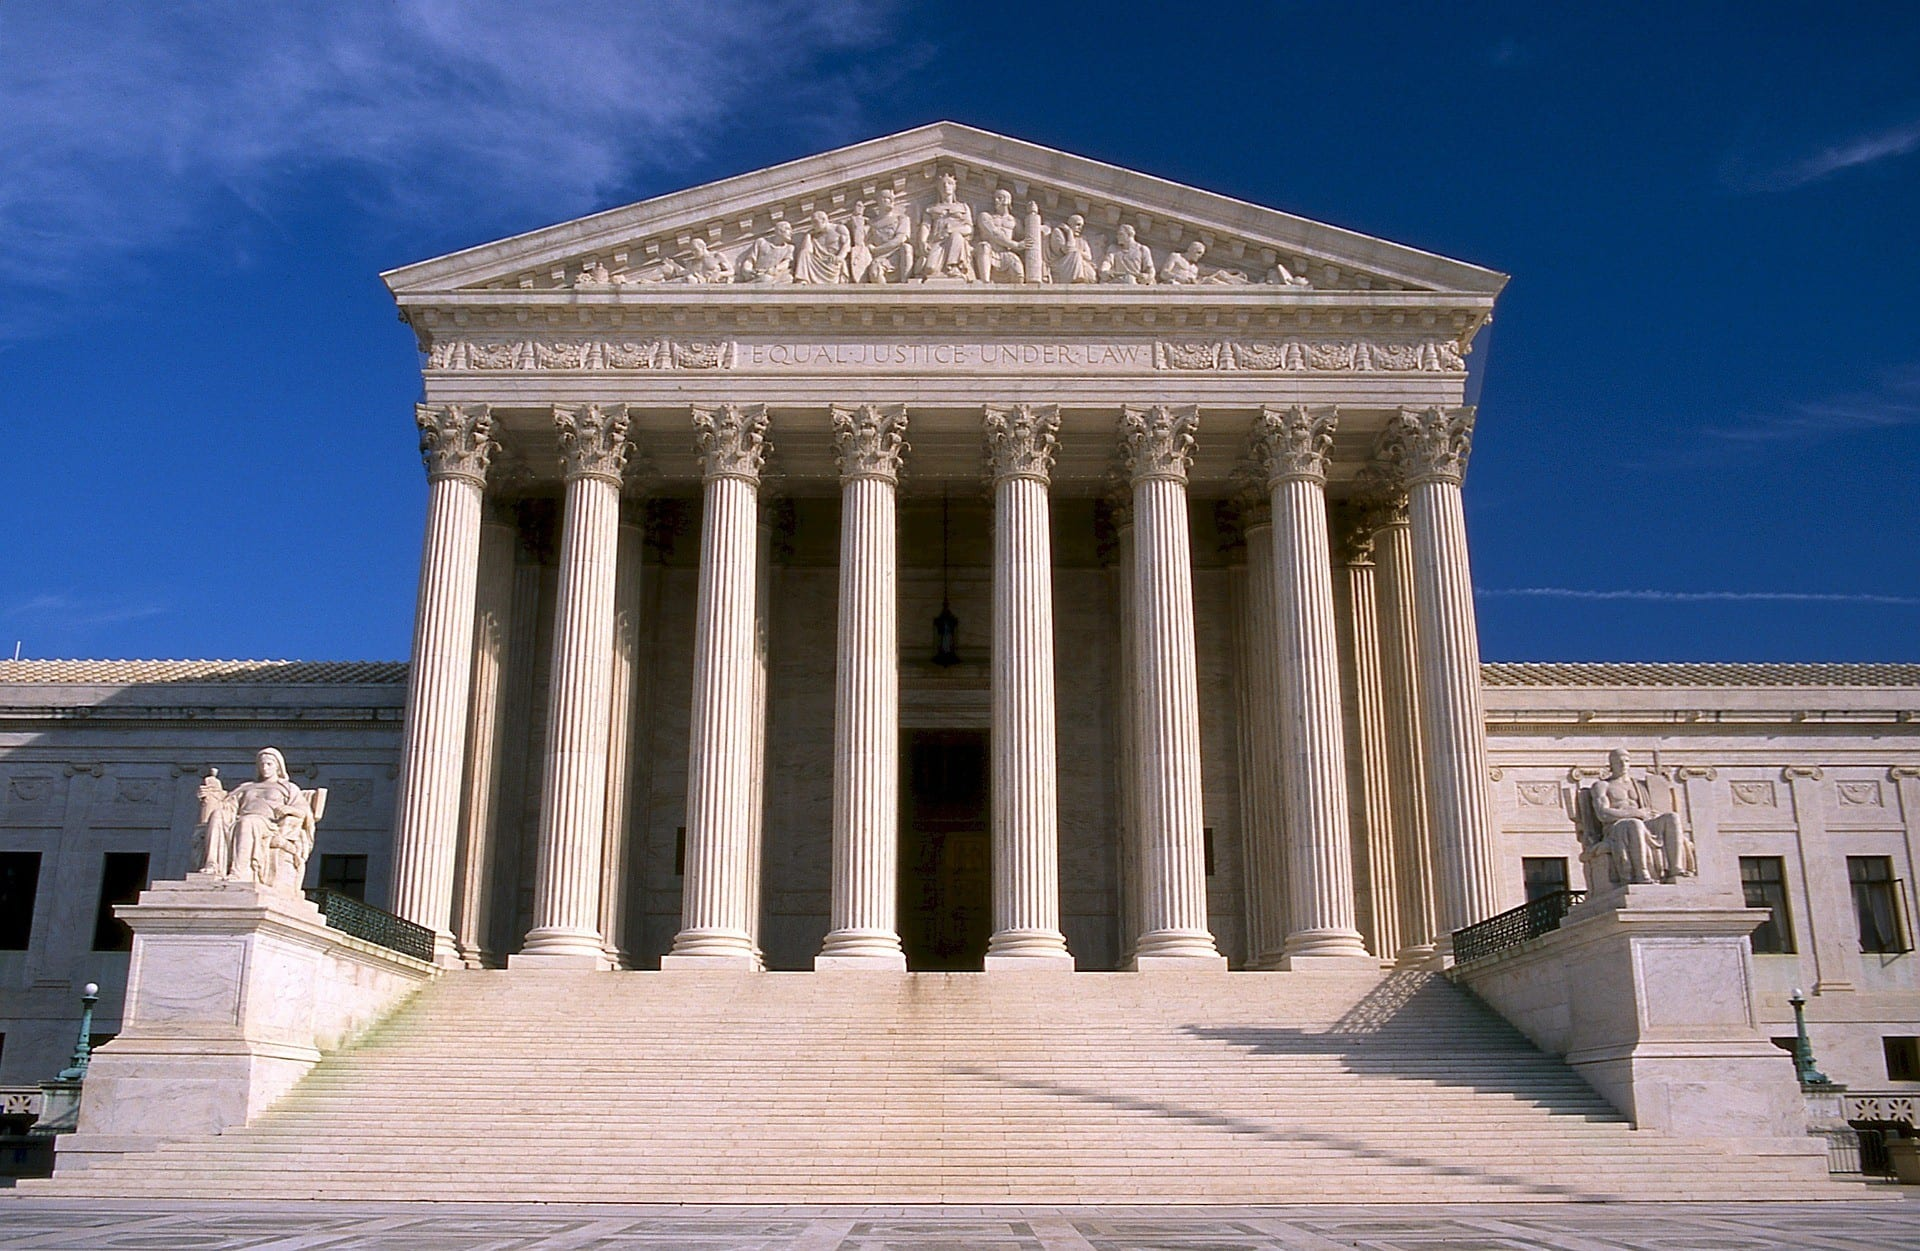 How Much Does a Supreme Court Justice Make. how much does a supreme court justice make a year. how much does a supreme court judge make. how much does a supreme court judge make a year. supreme court salary